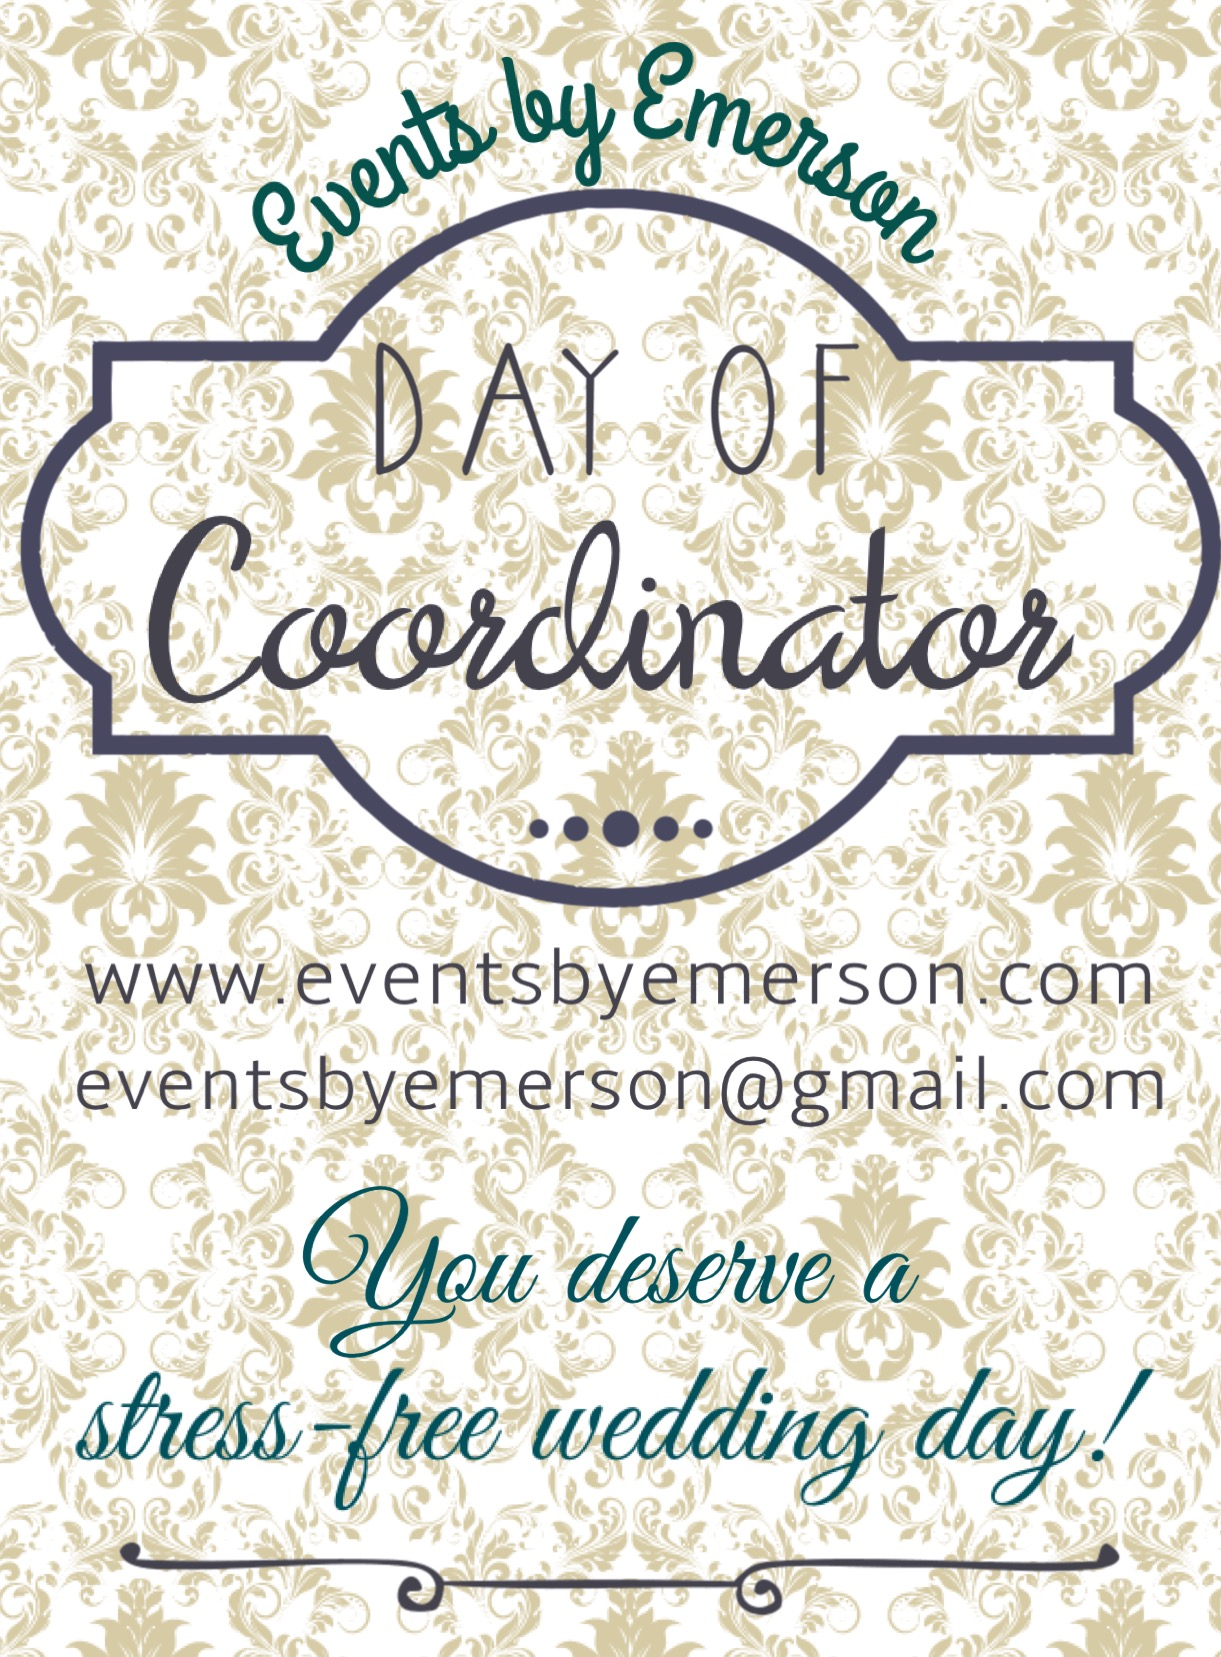 A Bit About 'Day Of' Coordination Services